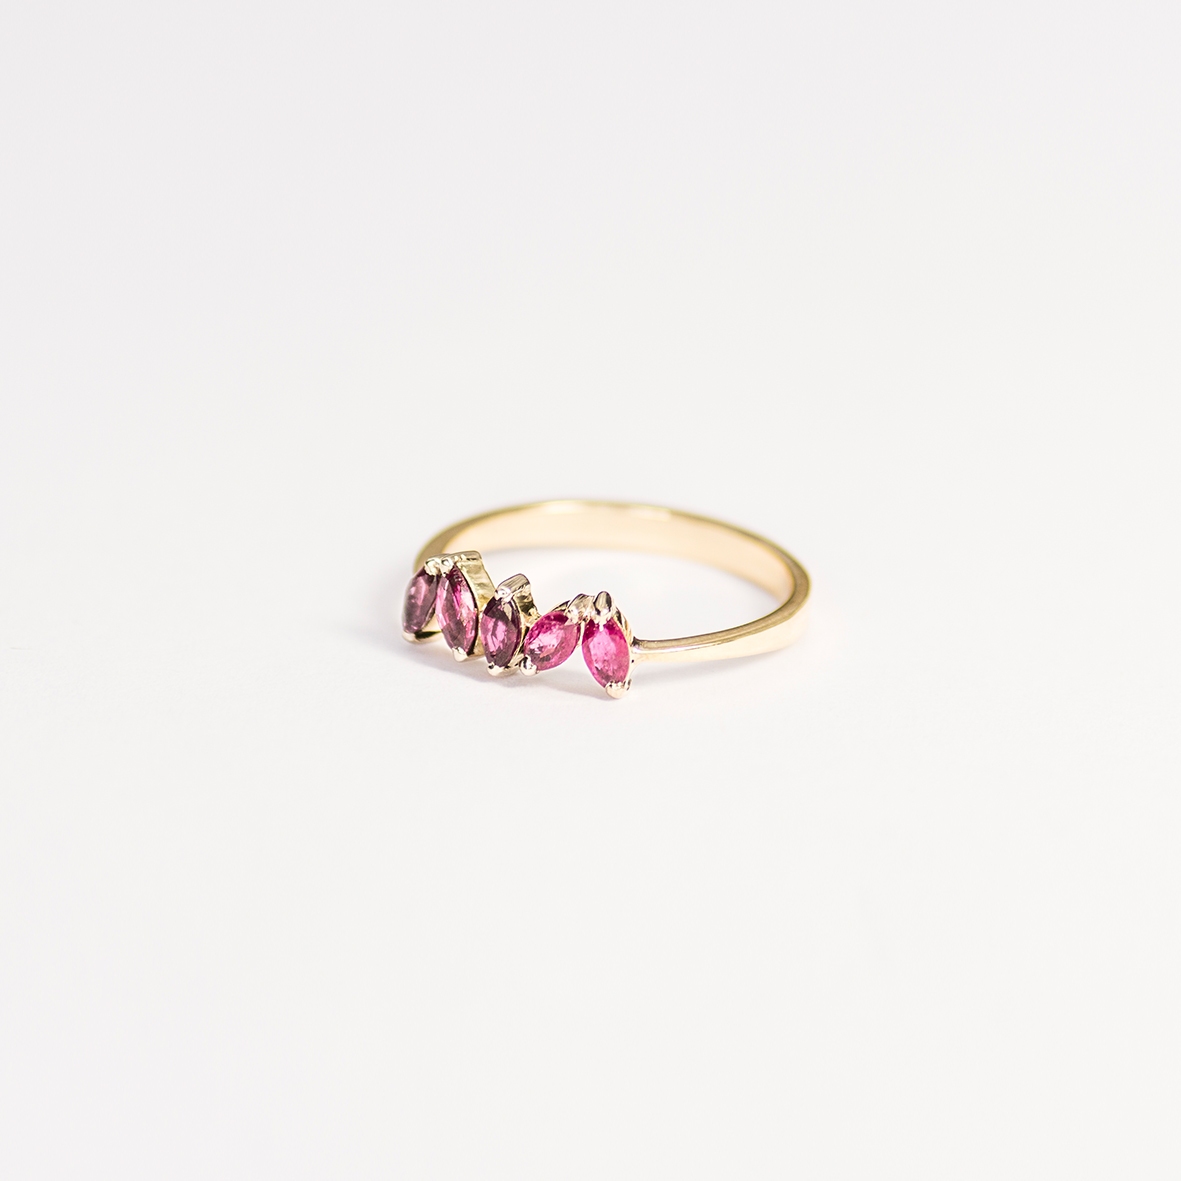 4. OONA_engagement_principal_ruby petals sapphire ring